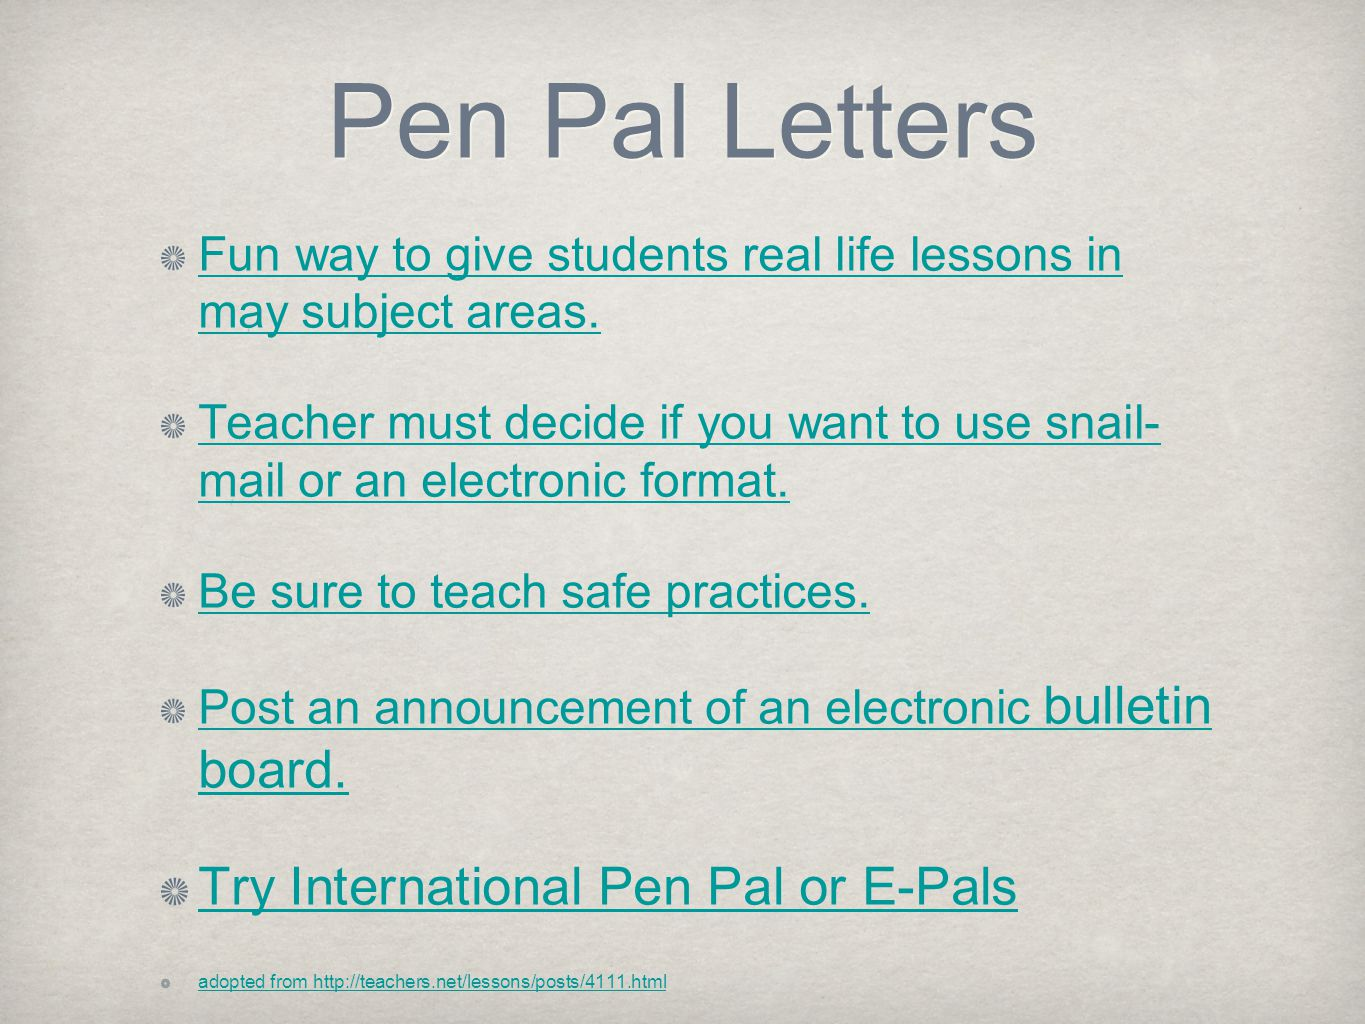 Pen Pal Letters Fun way to give students real life lessons in may subject areas.